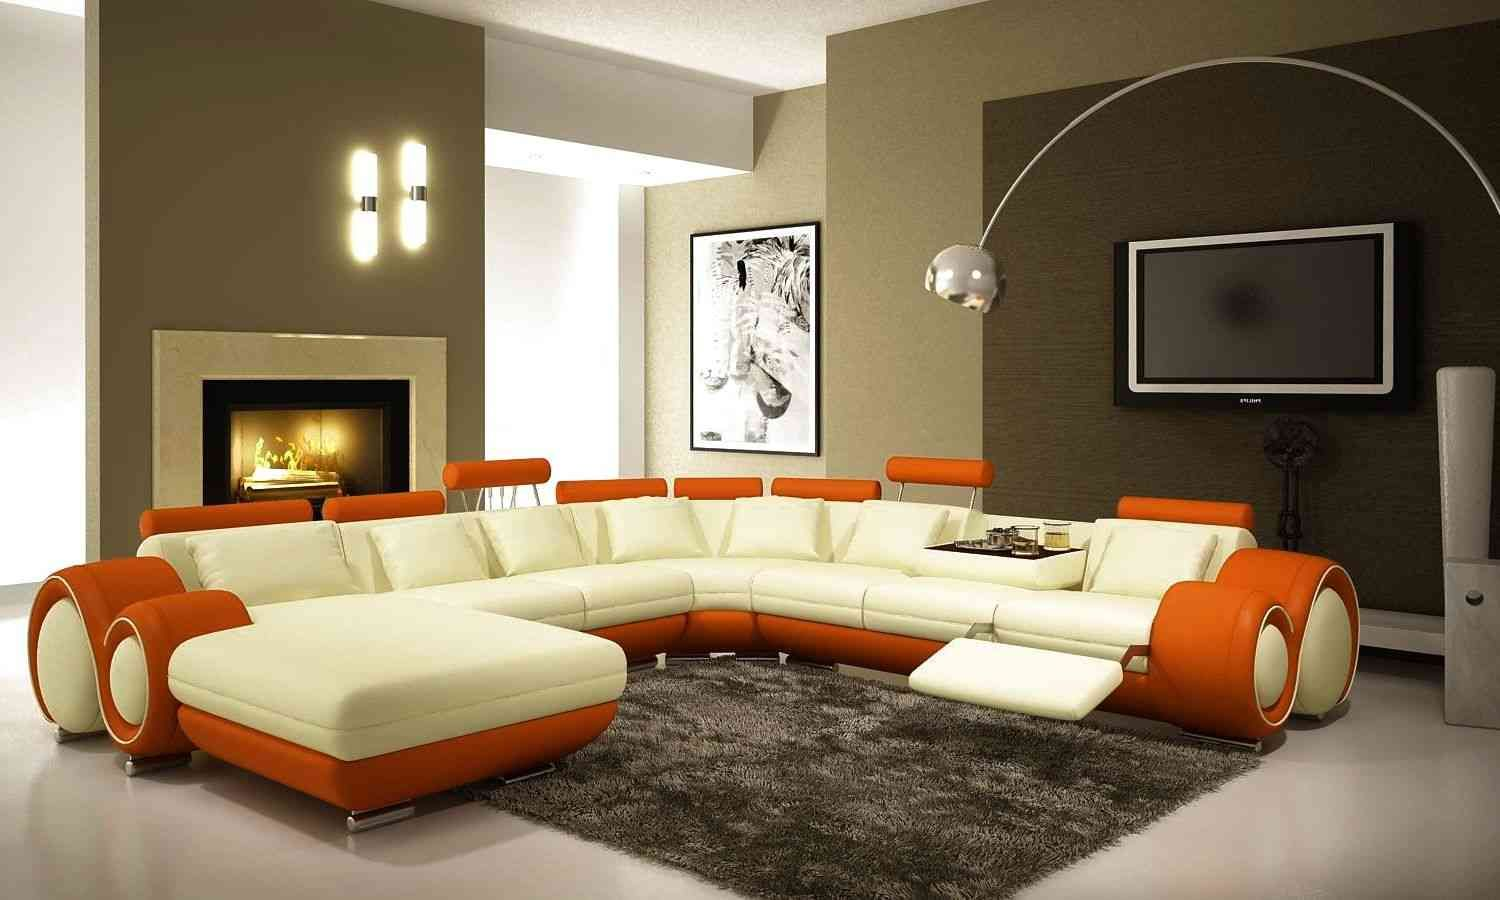 25 Beautiful Minimalist Living Room